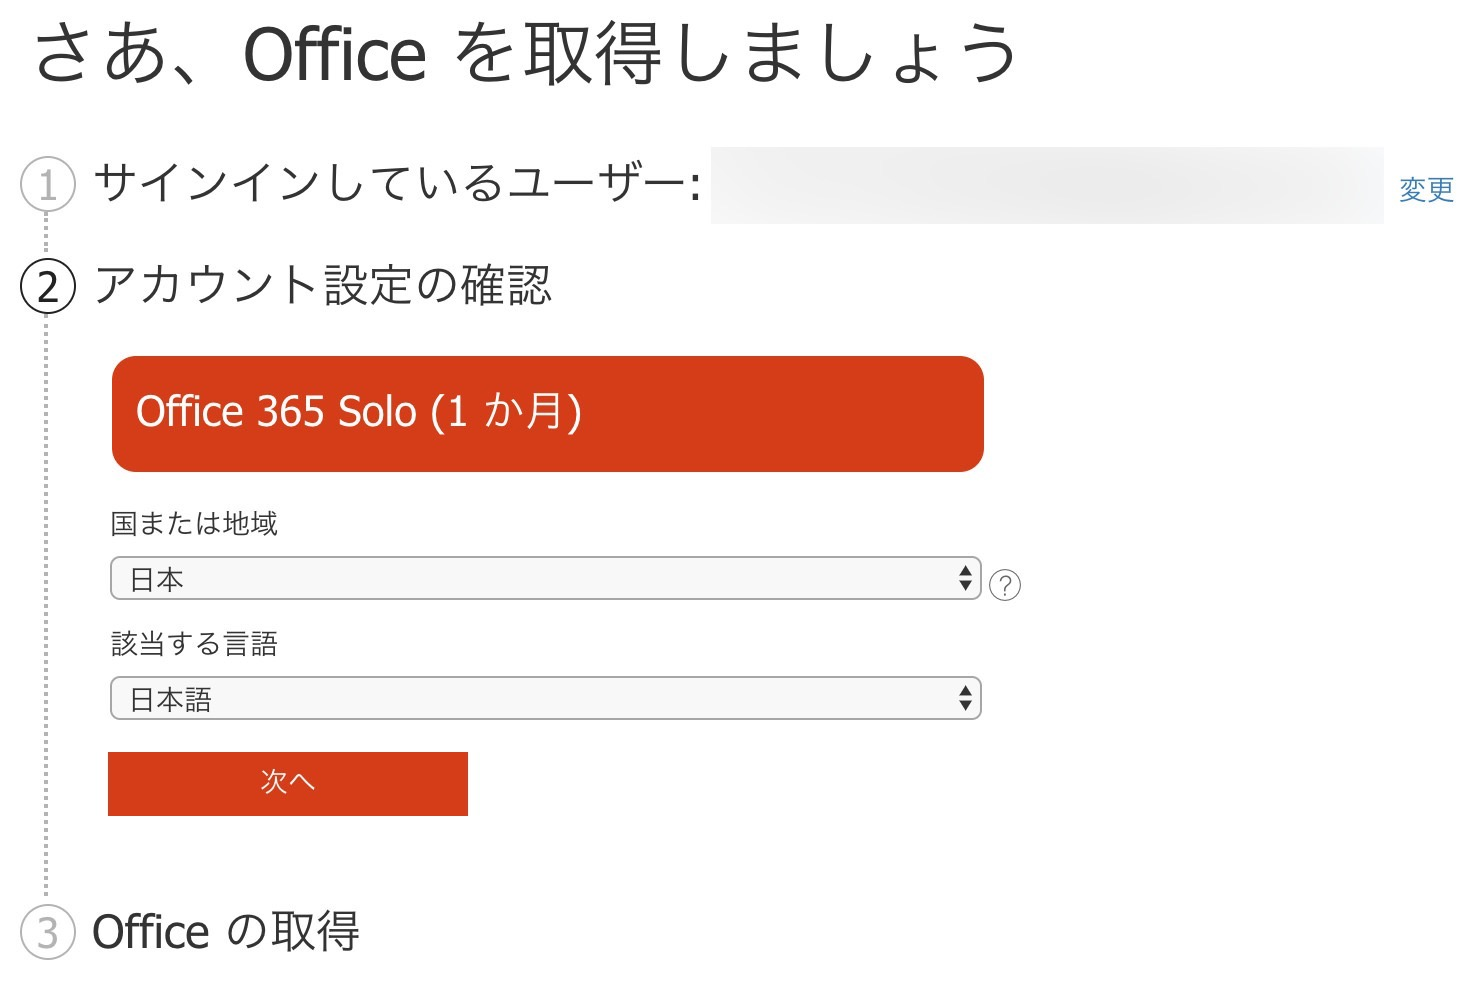 Office 365 Solo−4